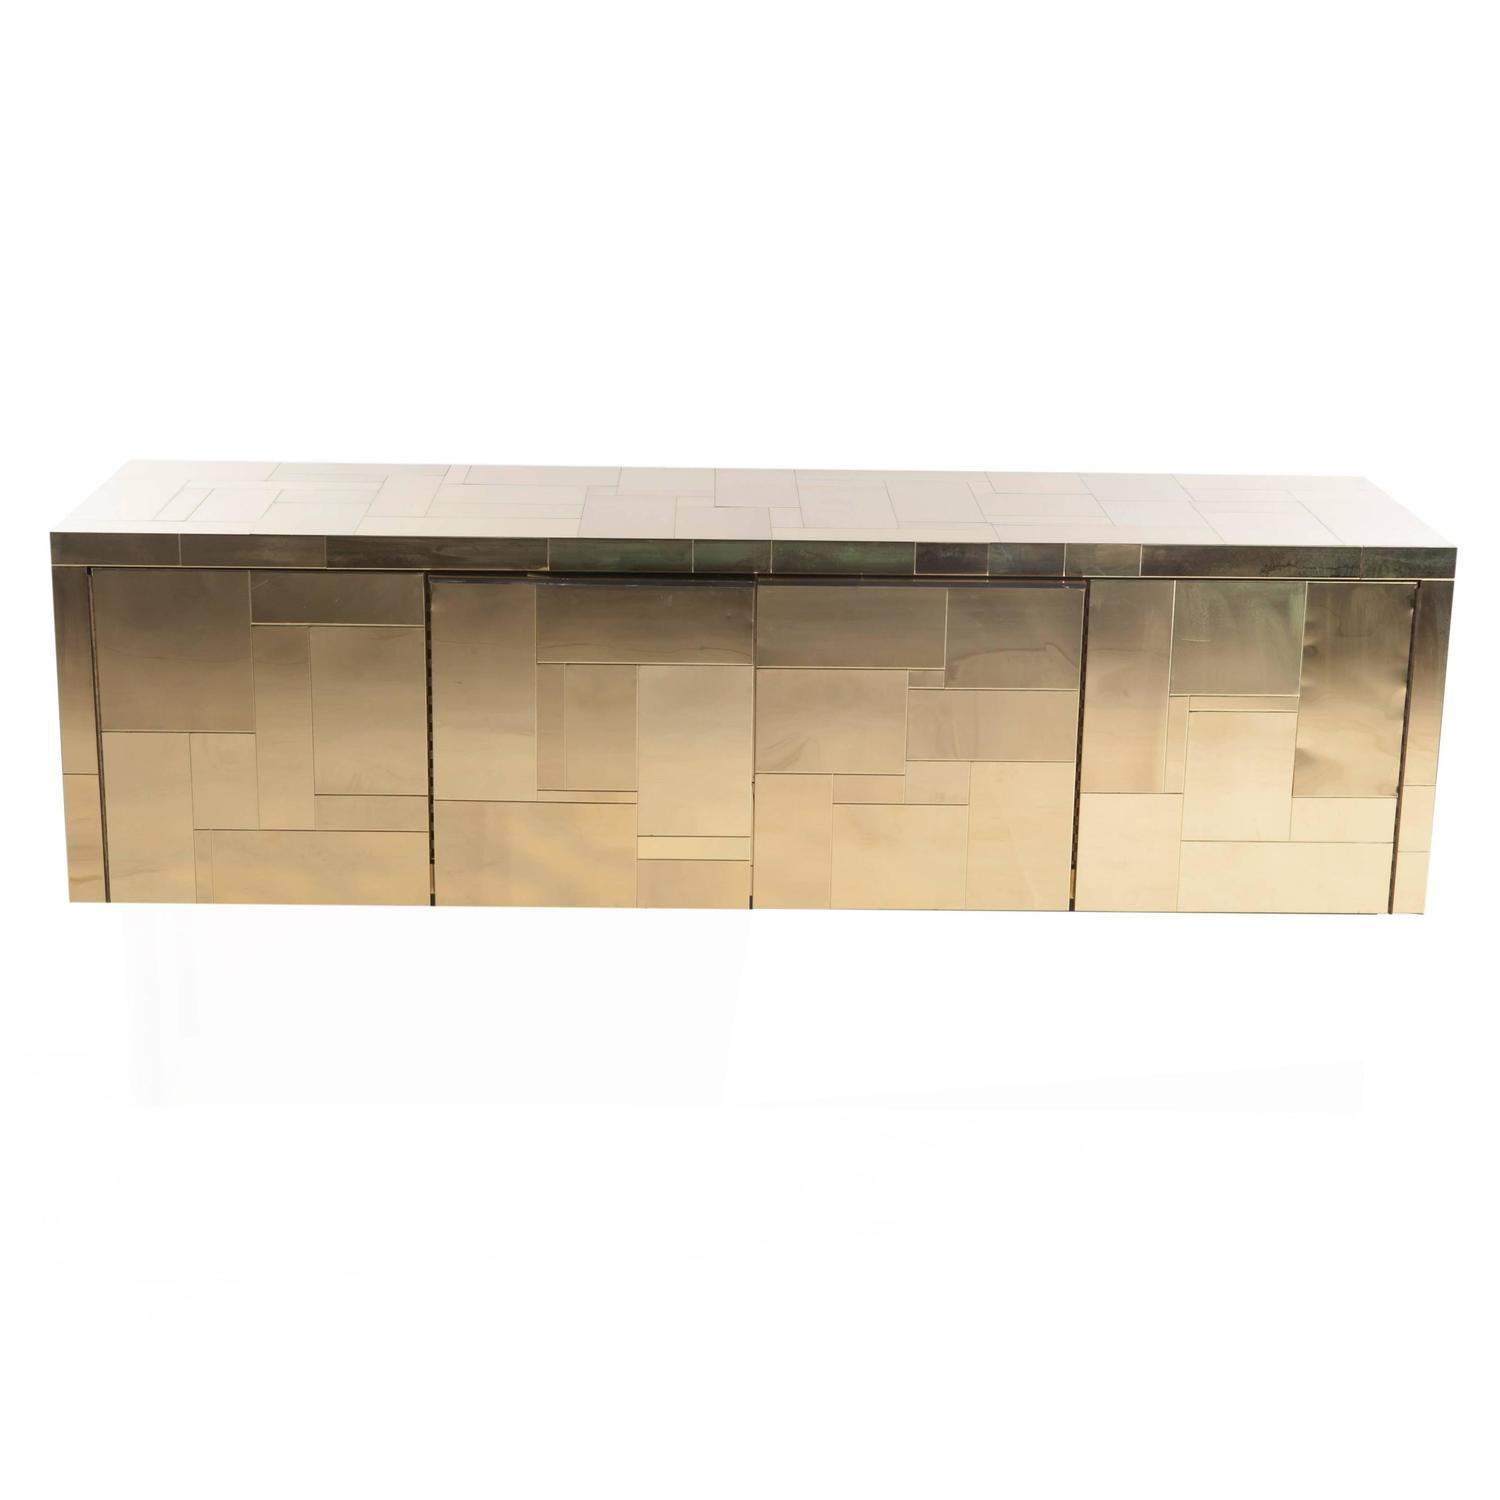 #966F35 Paul Evans Brass Cityscape Wall Mounted Cabinet At 1stdibs with 1500x1500 px of Most Effective Wall Mounted Open Shelf Cabinet 15001500 wallpaper @ avoidforclosure.info